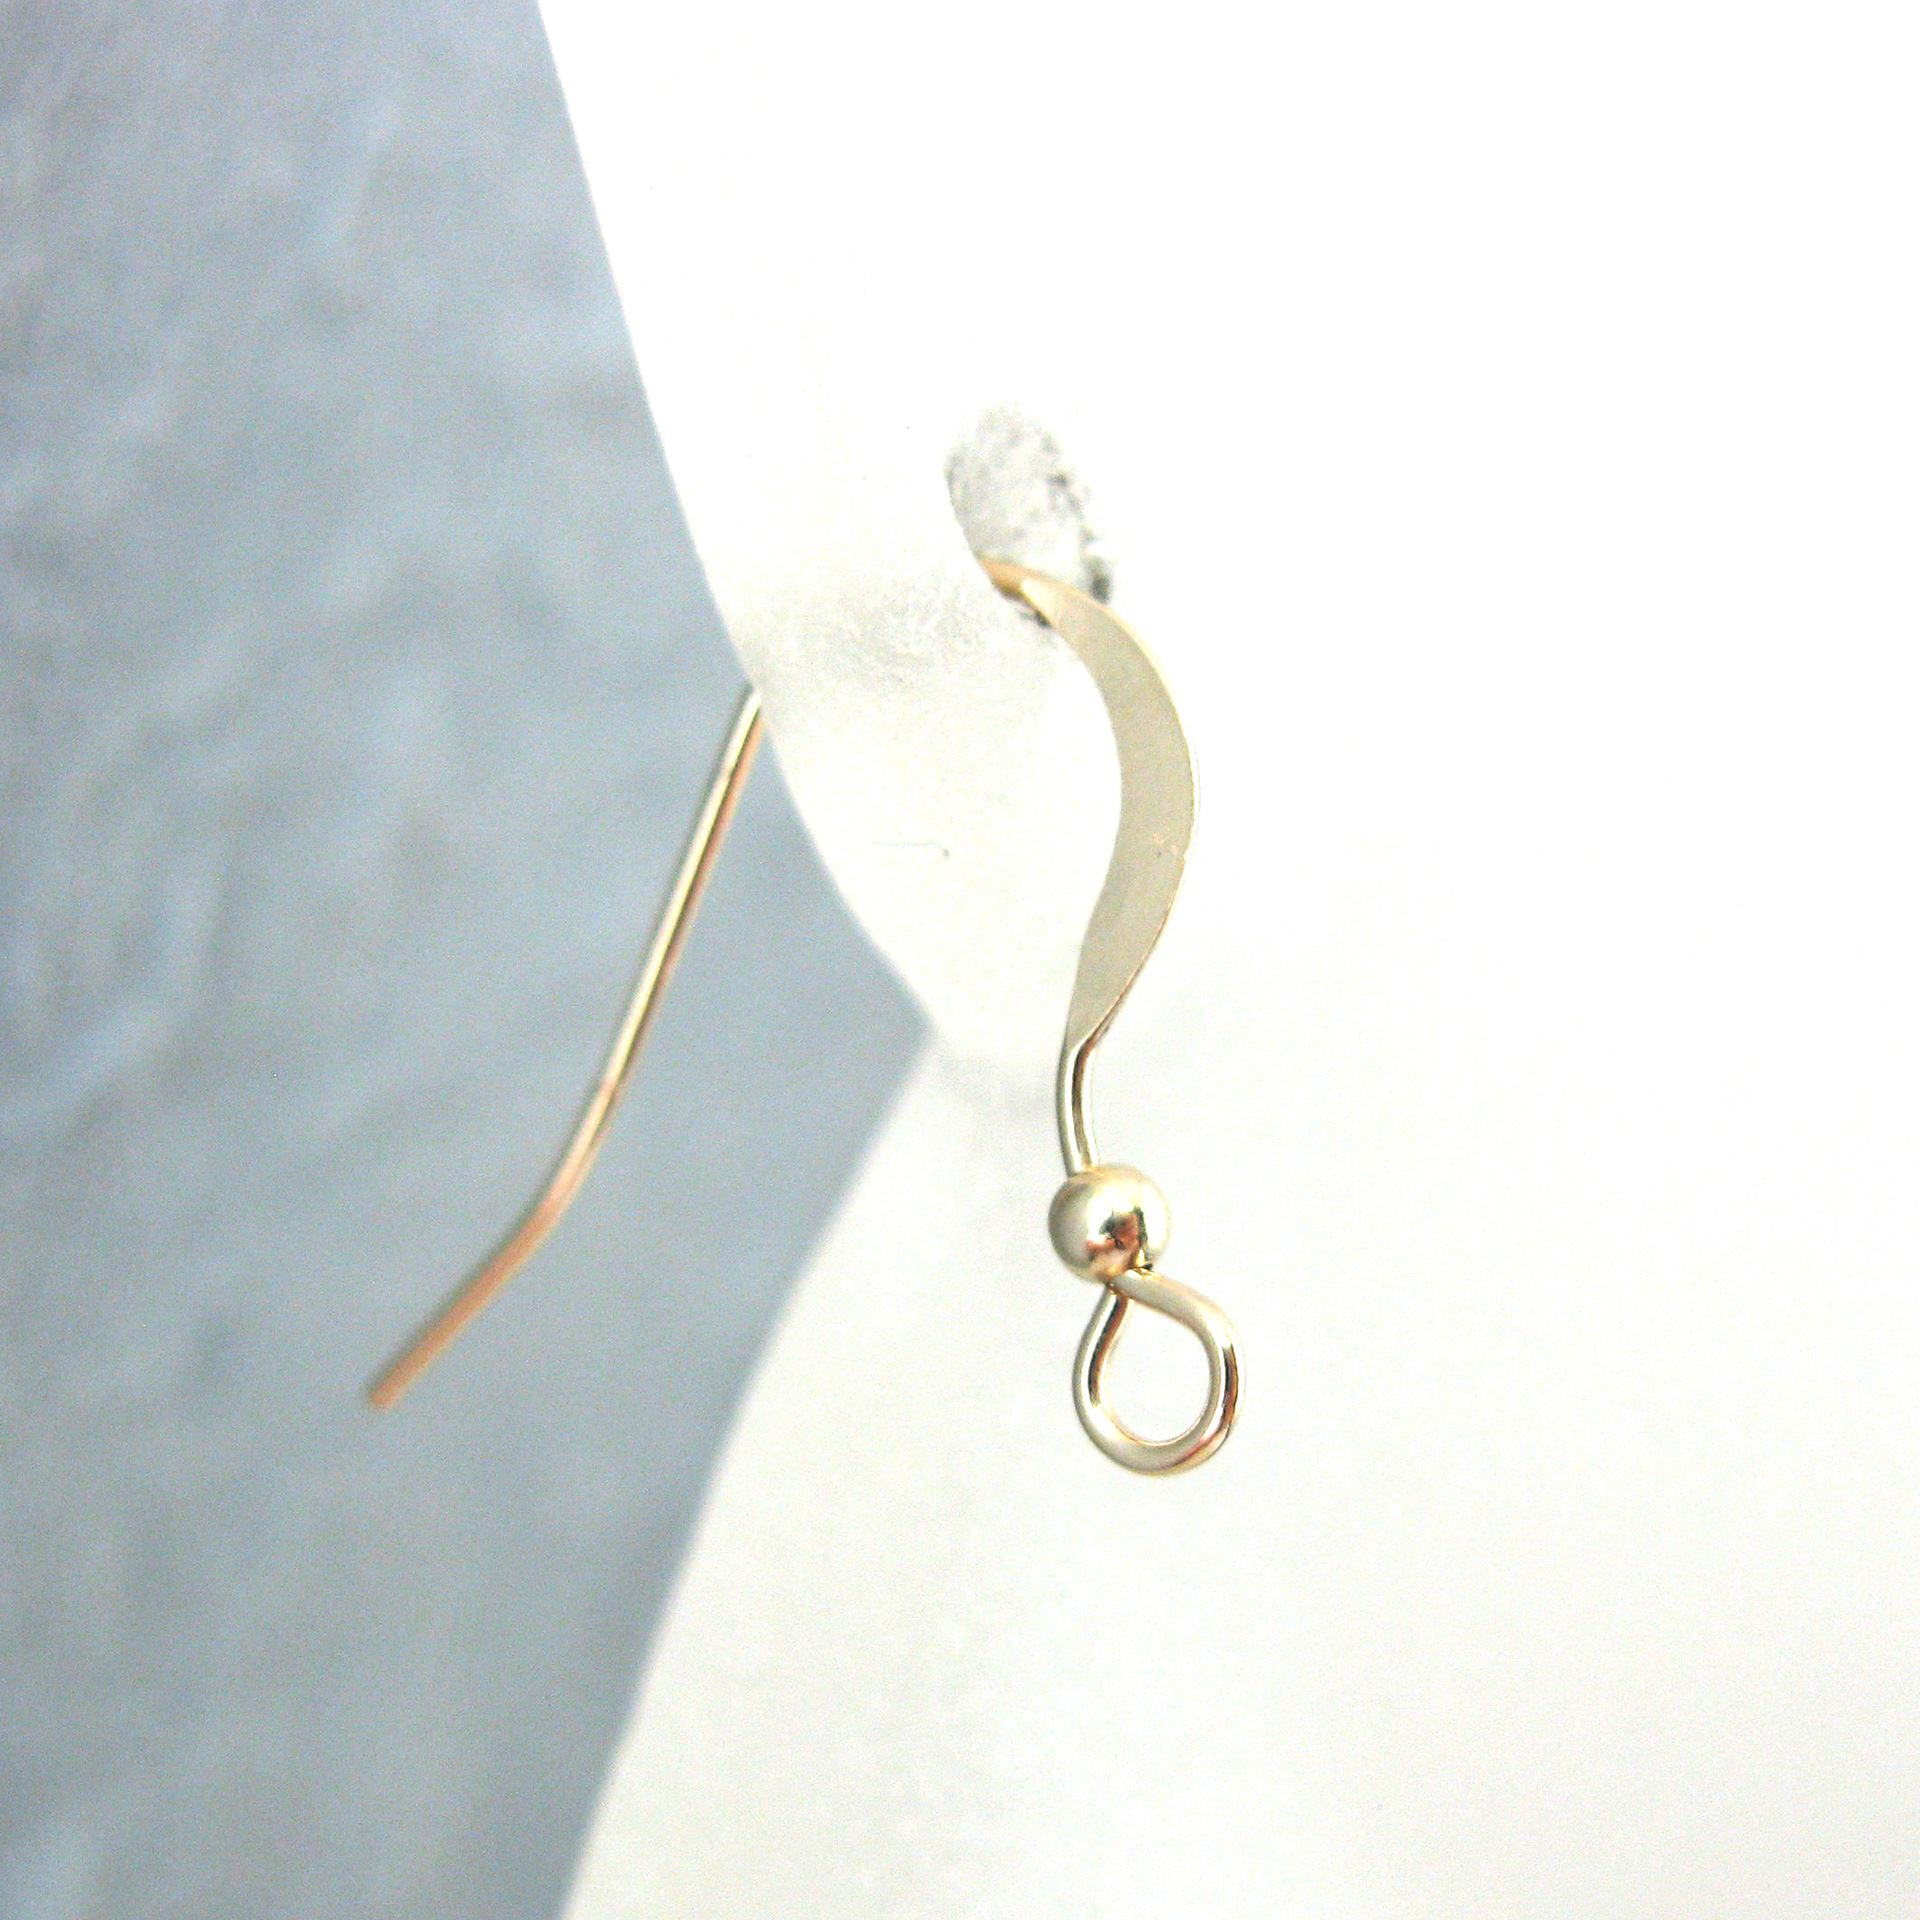 14K Gold Filled Earwires -Flat Fishhook with Ball (3 pairs, 6 pieces)